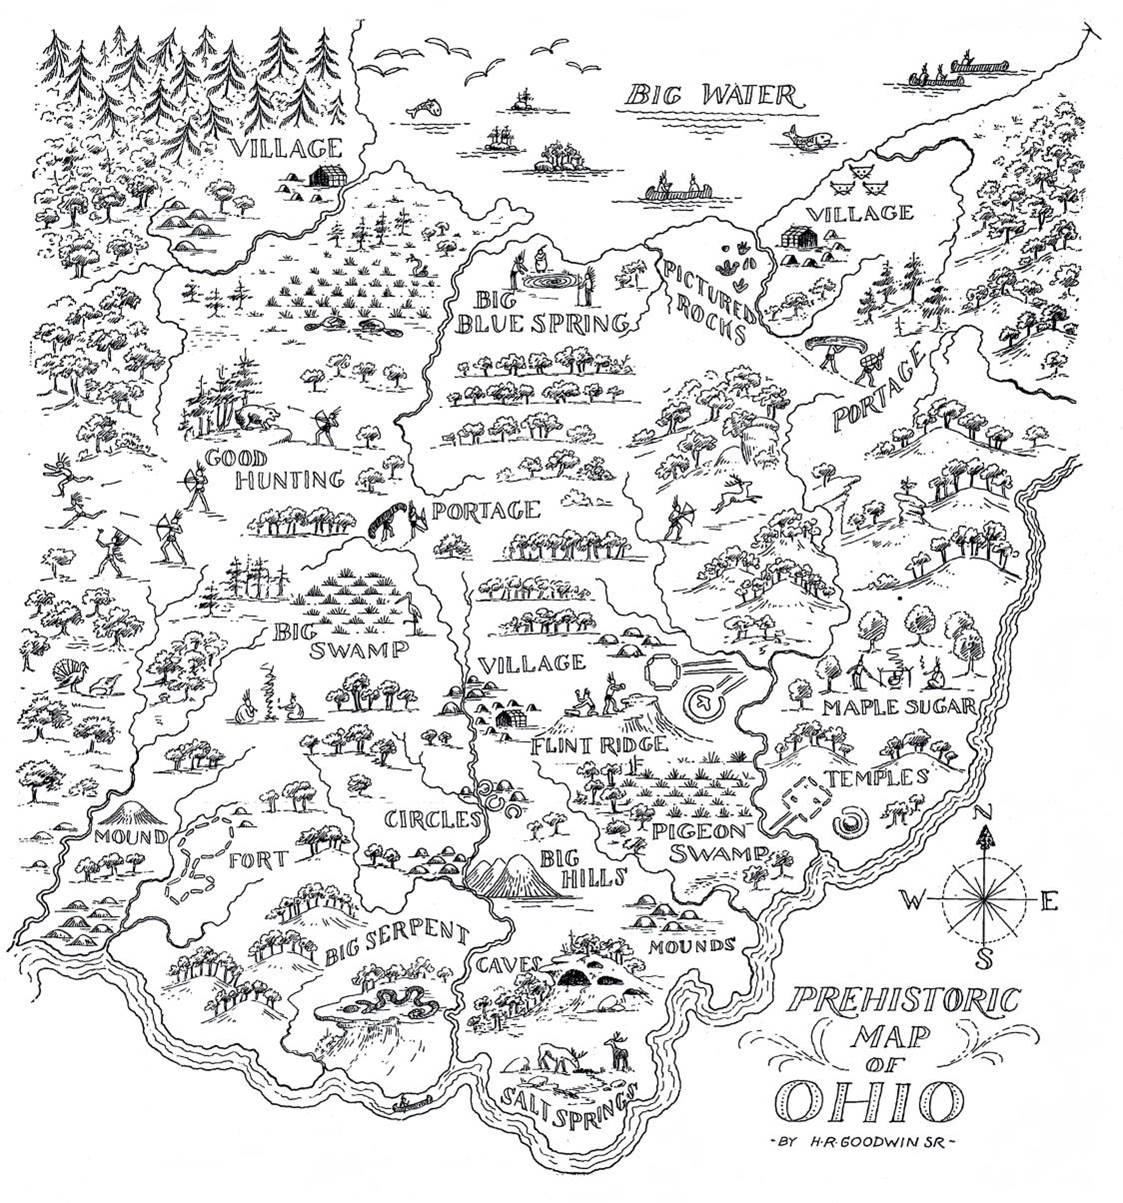 PREHISTORIC MAP OF OHIO | Ohio History Connection on map of new york indian tribe, map of florida indian tribe, map of huron indian tribe, map of kalispell indian tribe, map of north america indian tribe, map of mandan indian tribe, map of maidu indian tribe,